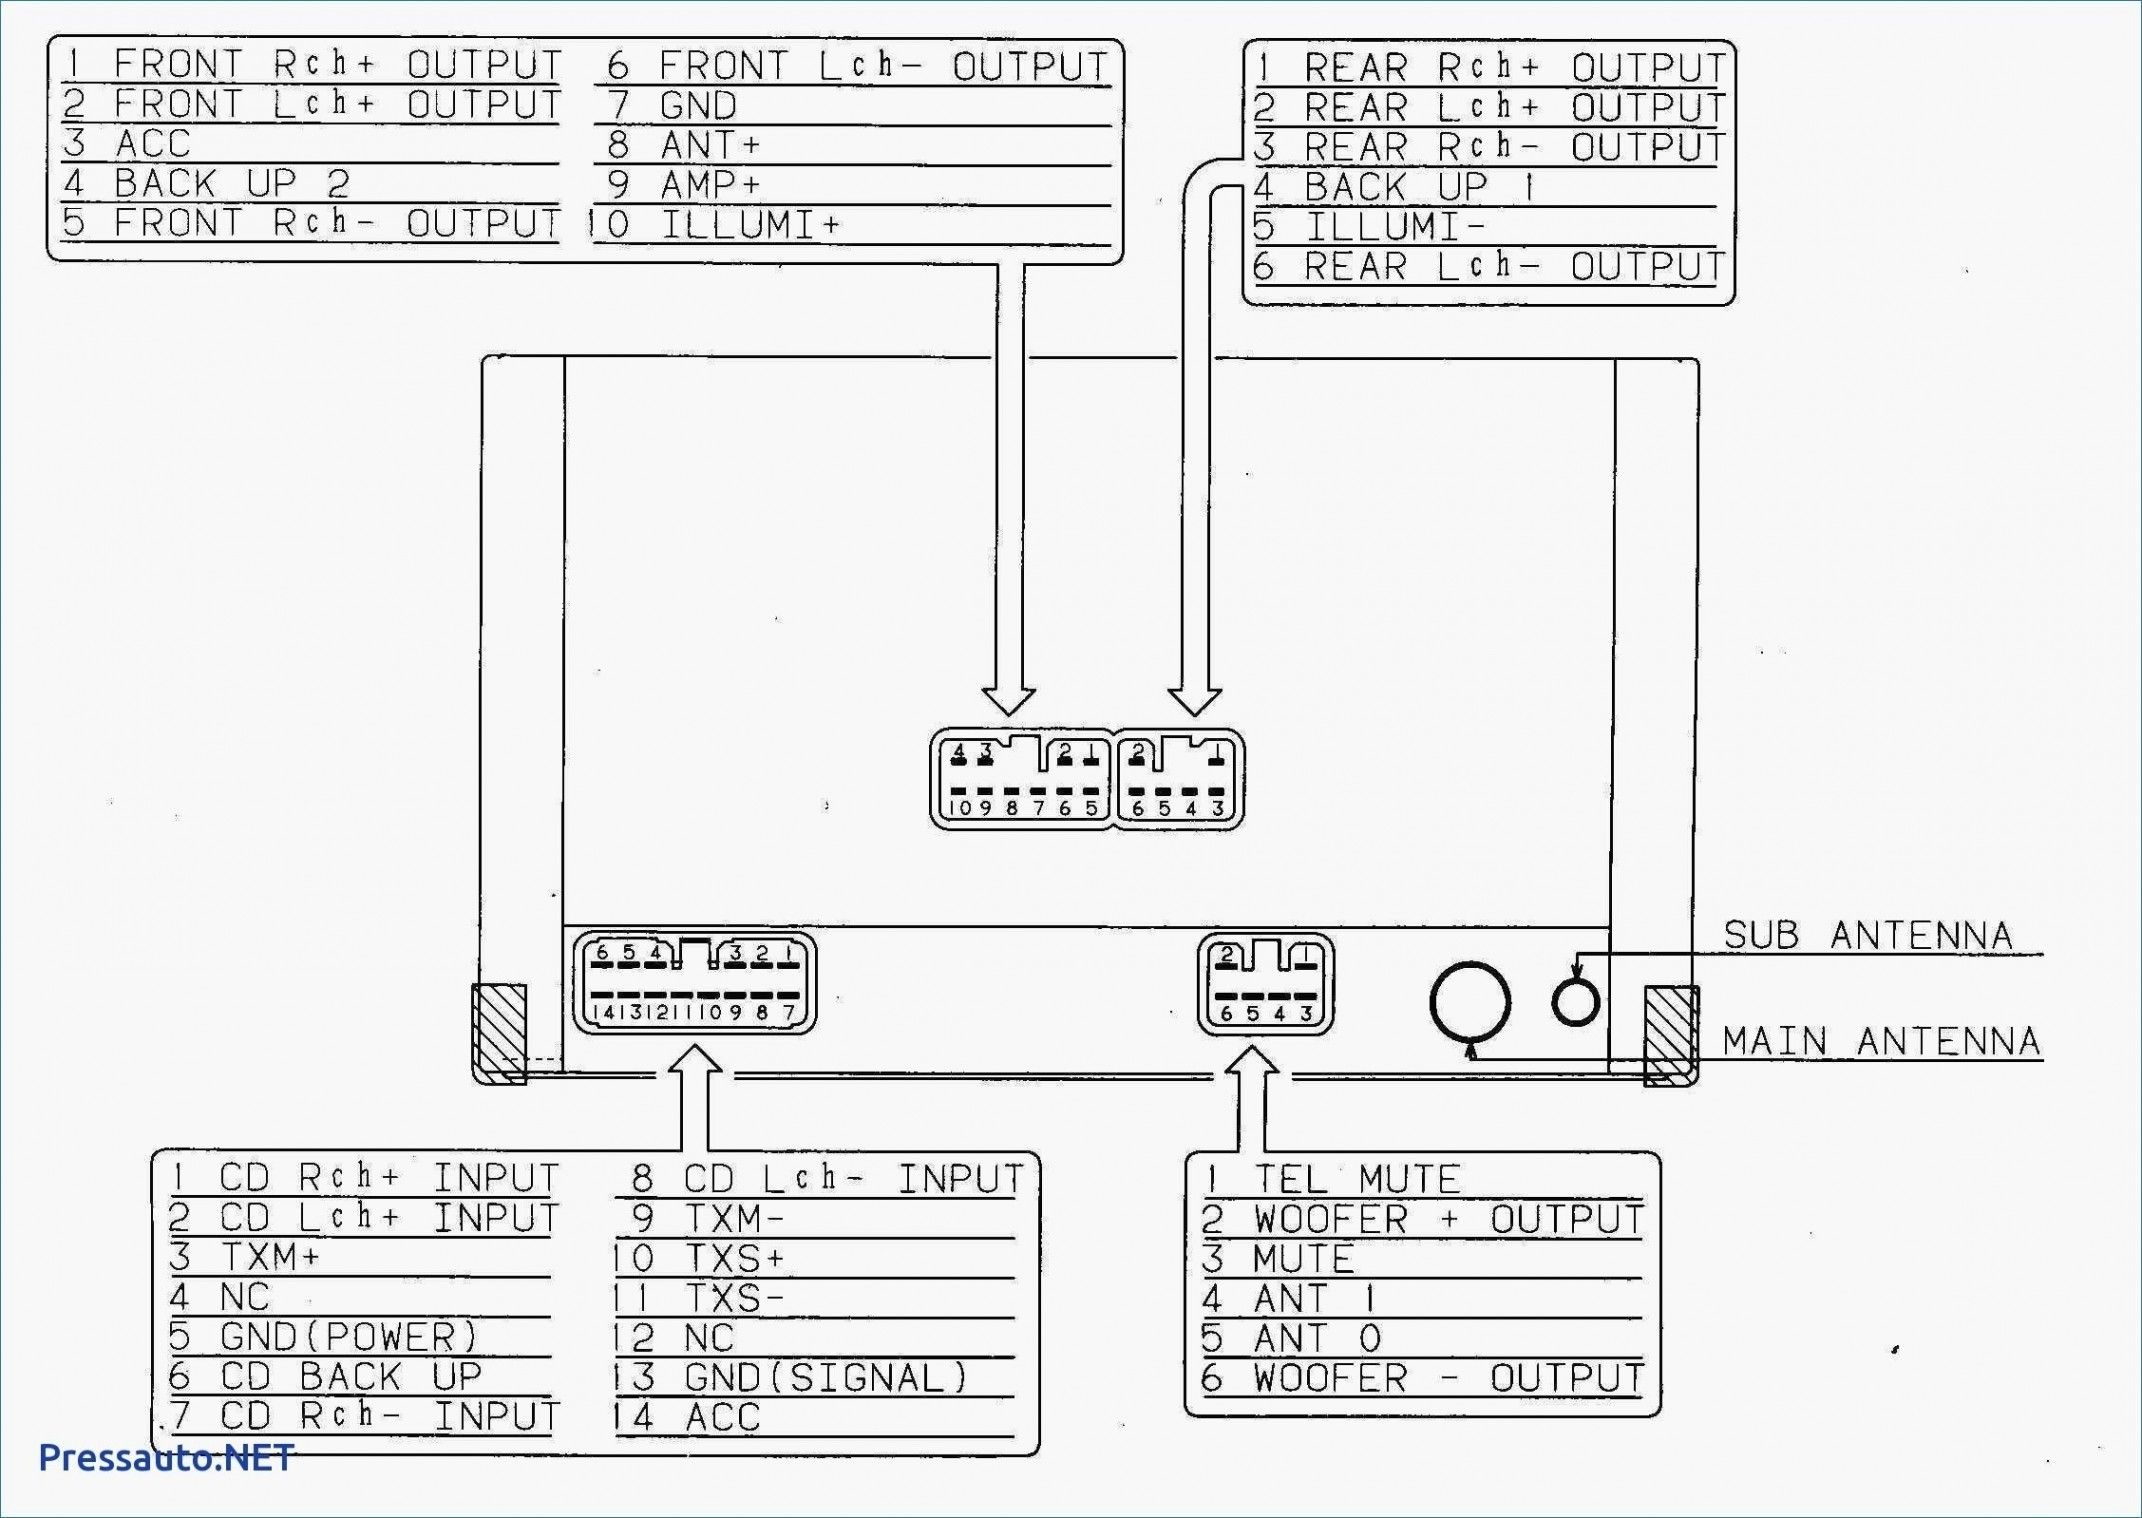 Pioneer Avh P2300dvd Wiring Diagram New In 2020 Car Stereo Sony Car Stereo Car Amplifier